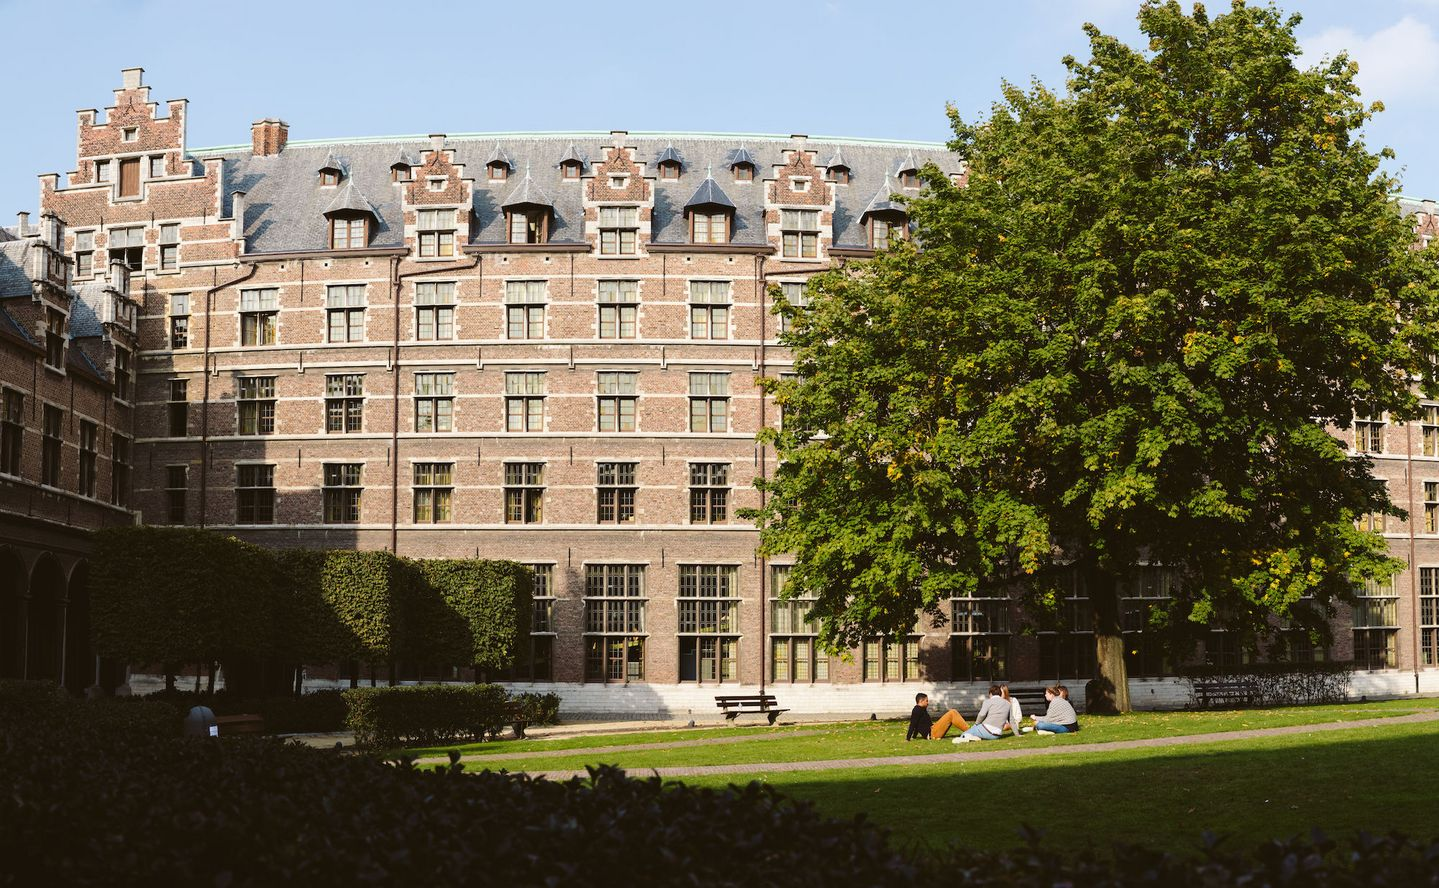 Picture of the city campus of the University of Antwerp